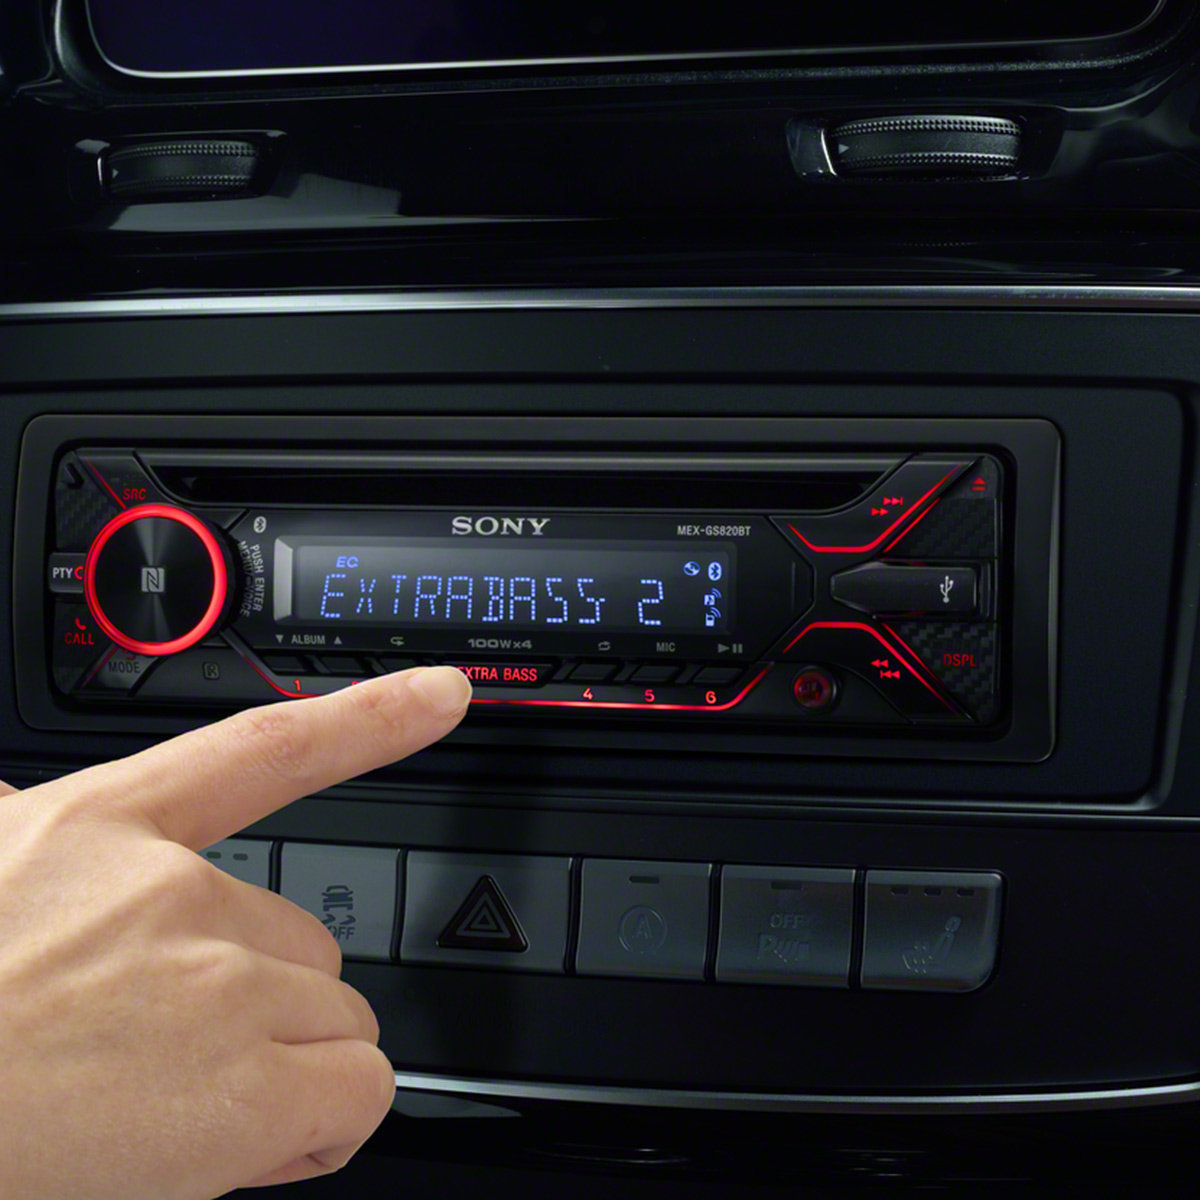 Sony Car Stereo Wiring Diagram The Stereo Layout Of An